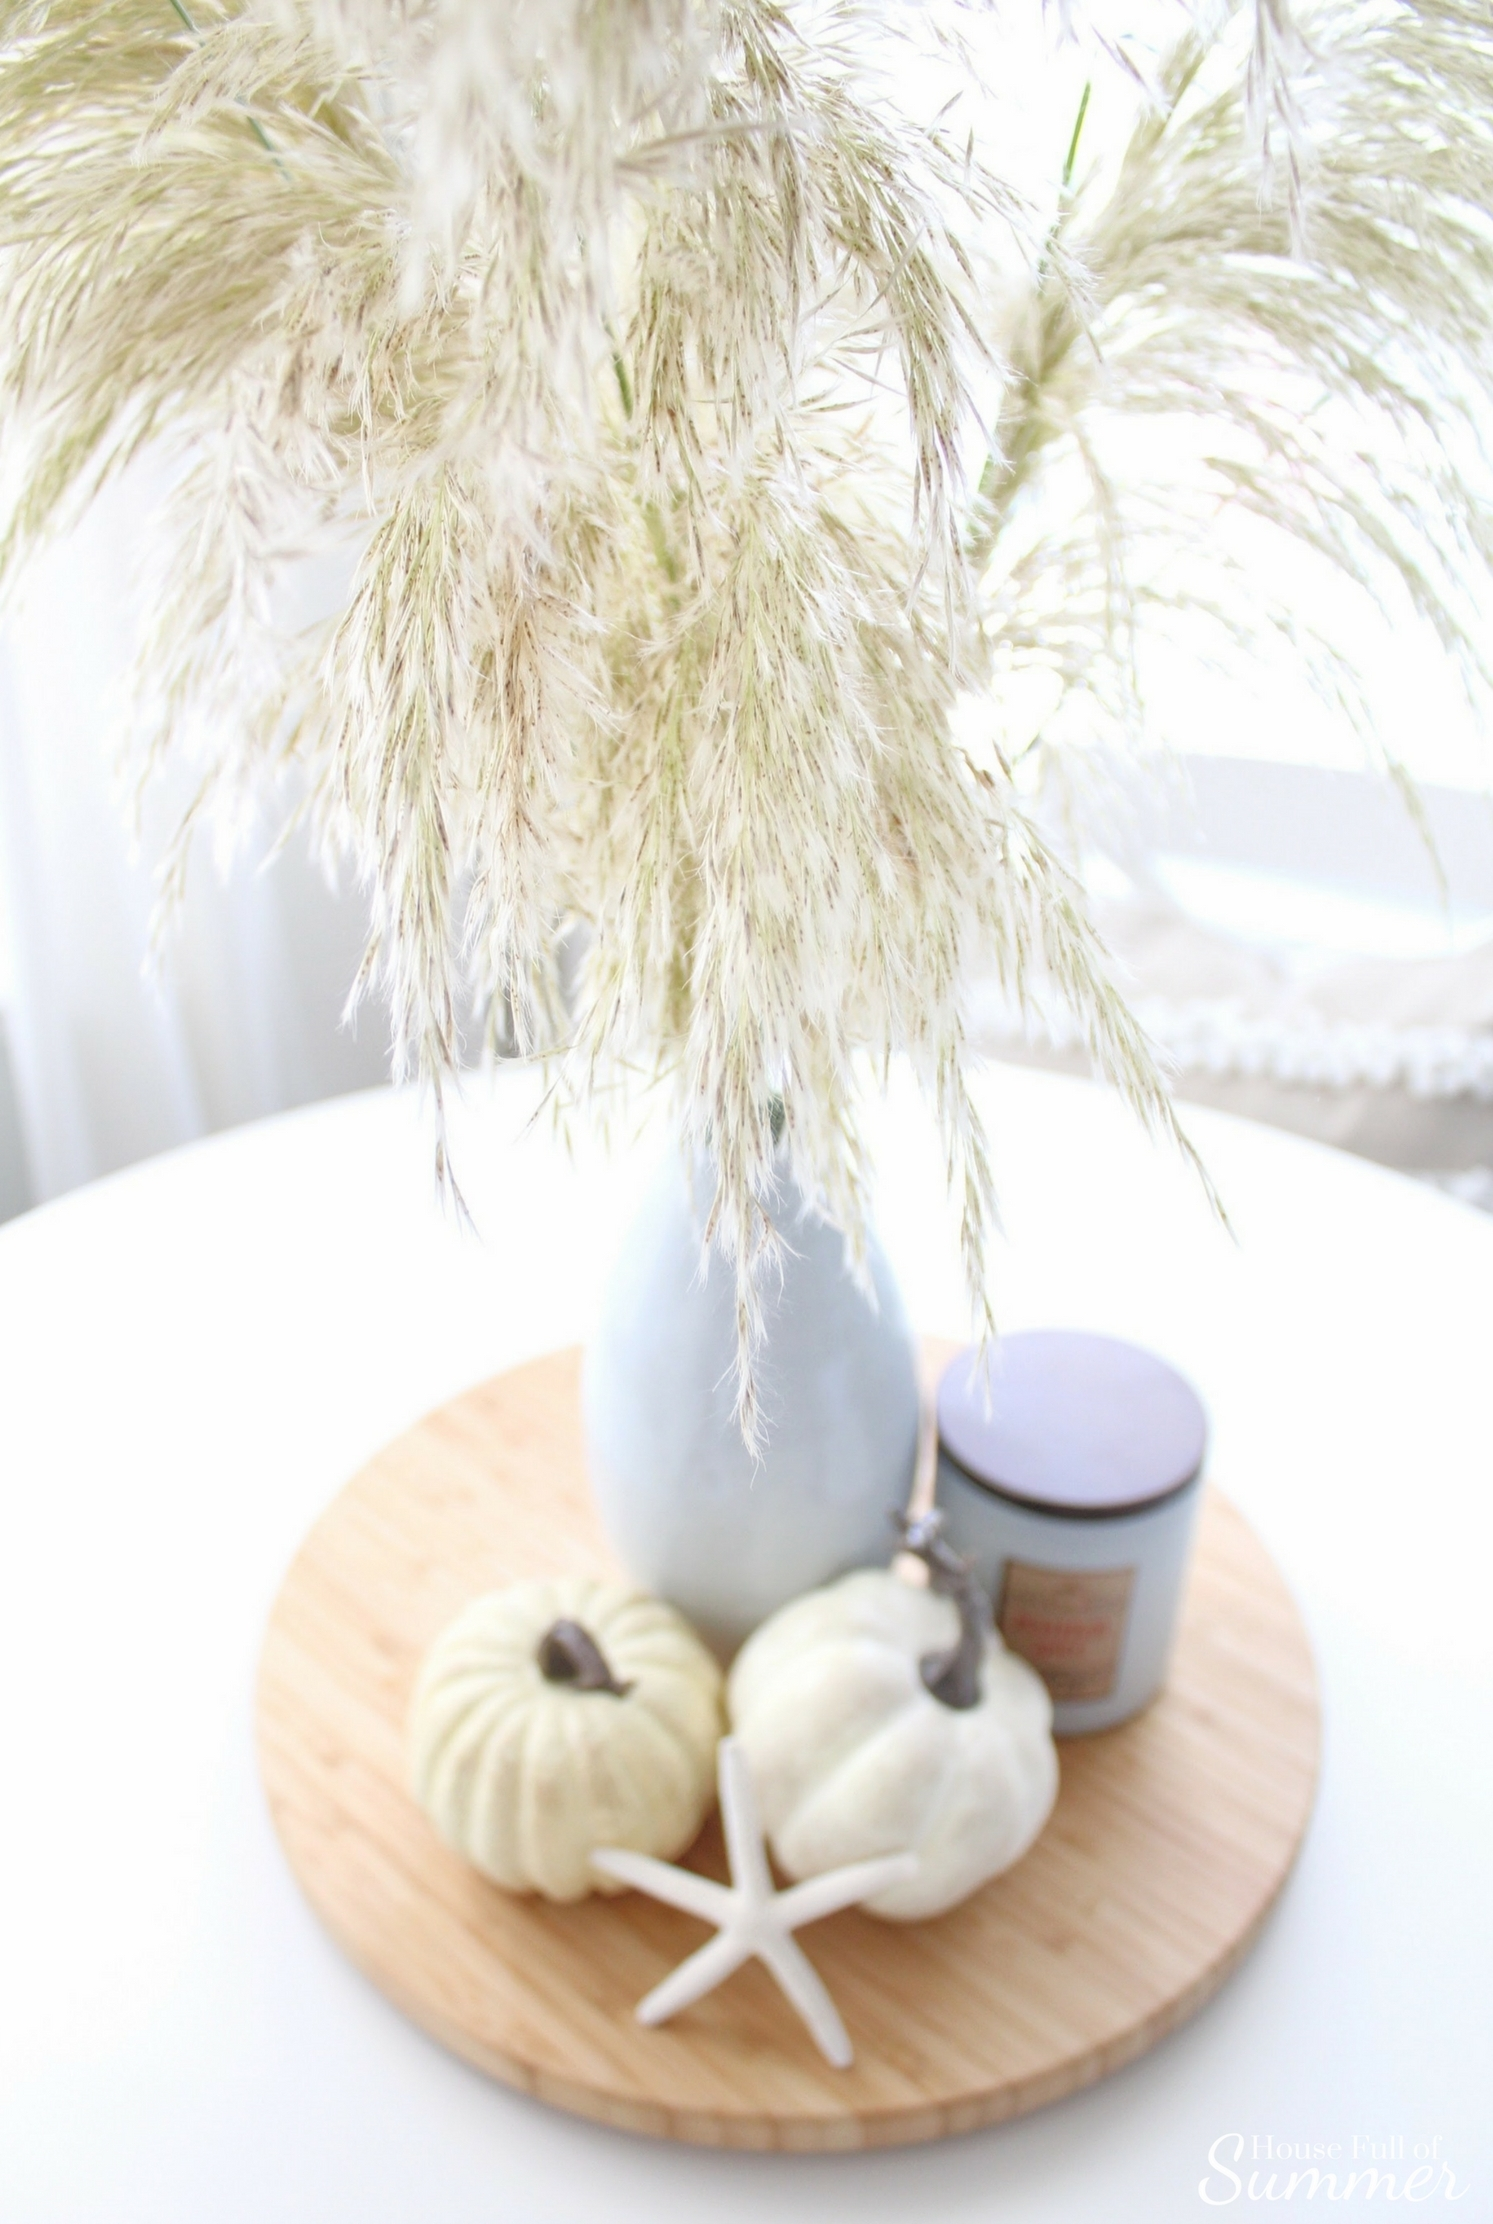 House Full of Summer - Fall Home Tour Blog Hop - Cozy Coastal Chic decor, table centerpiece, bringing in the outdoors, diy fall decor ideas